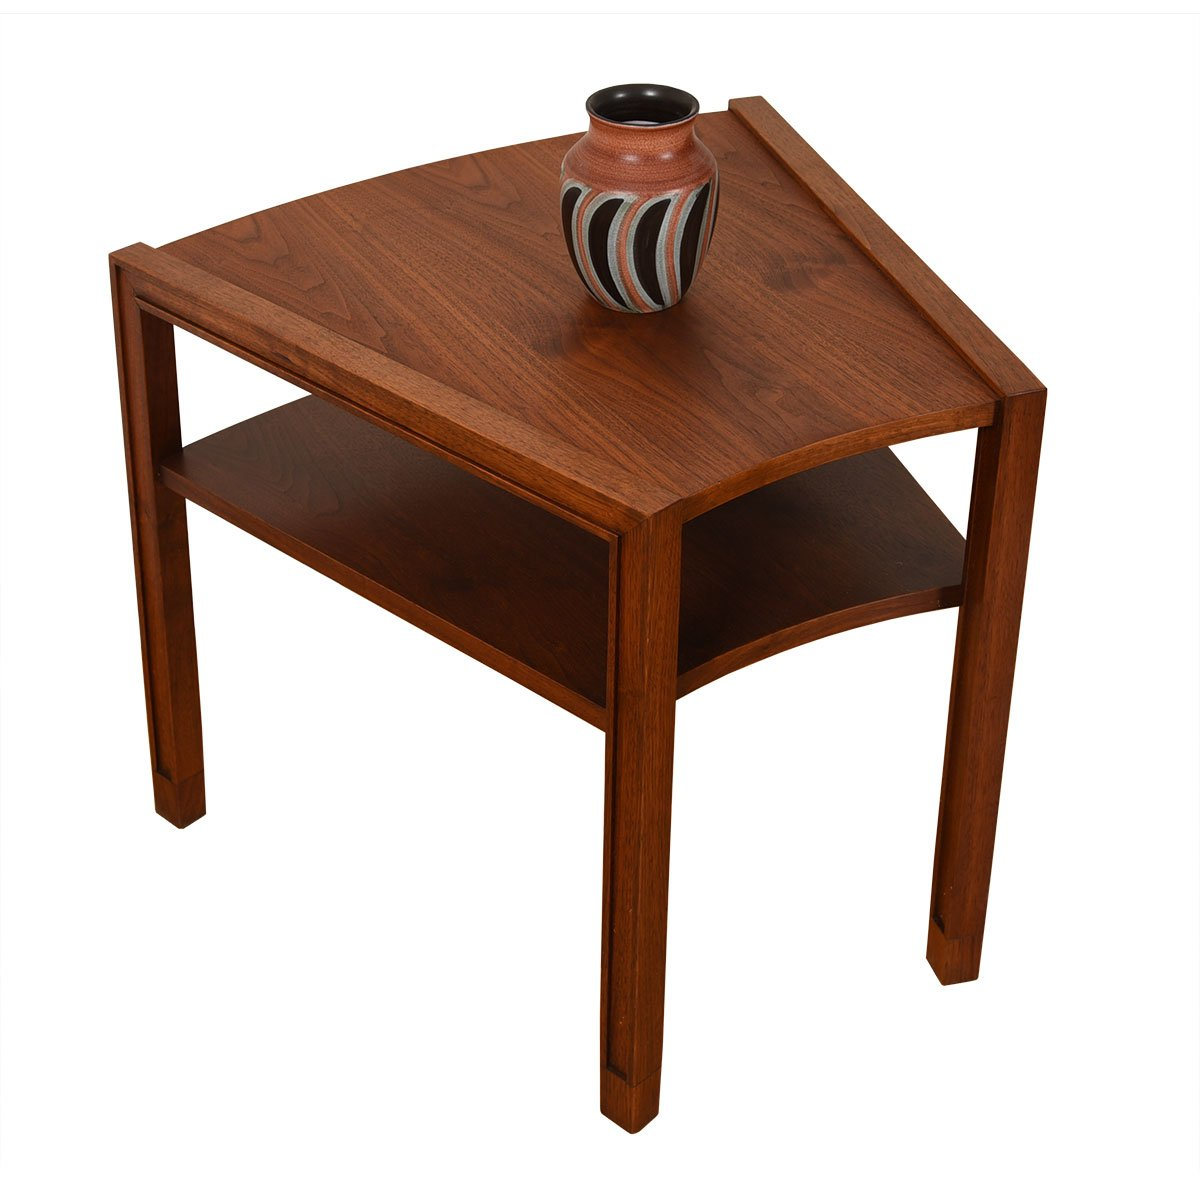 DUNBAR Mid Century 'Wedge' Accent Table with Shelf